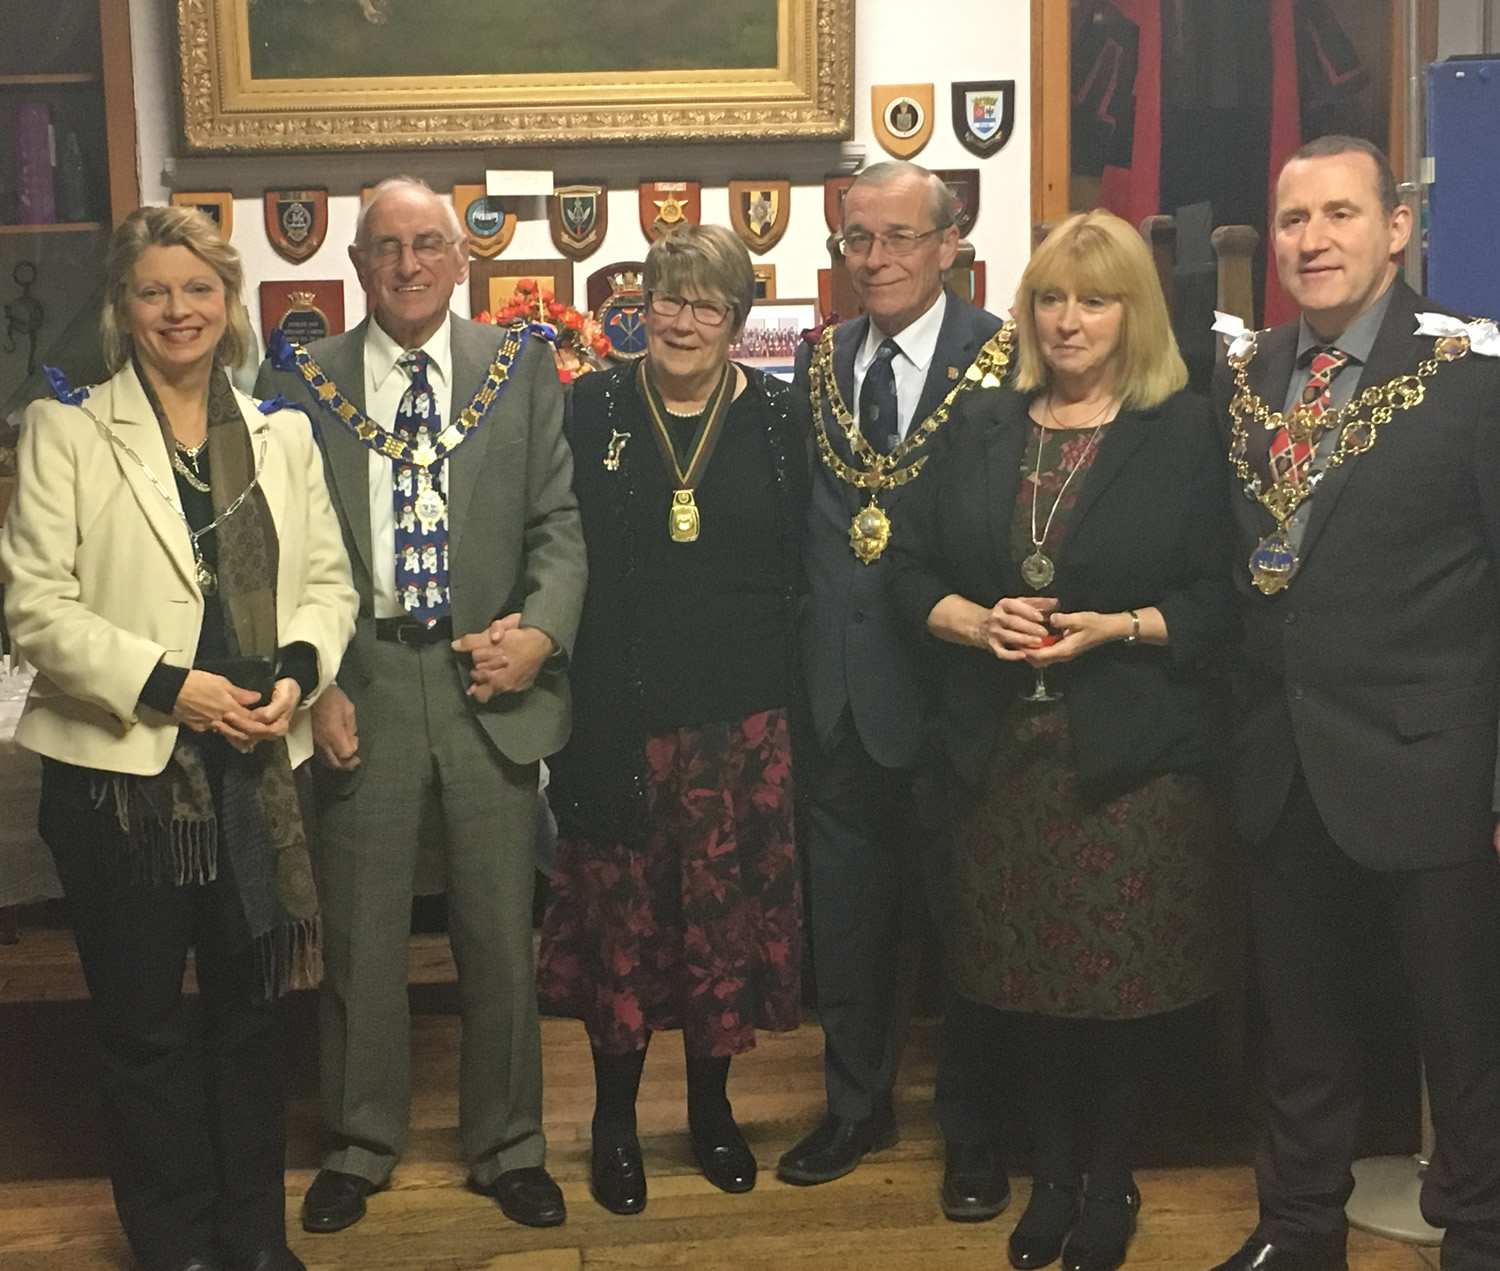 Lydd Town Council Christmas Reception, Guild Hall